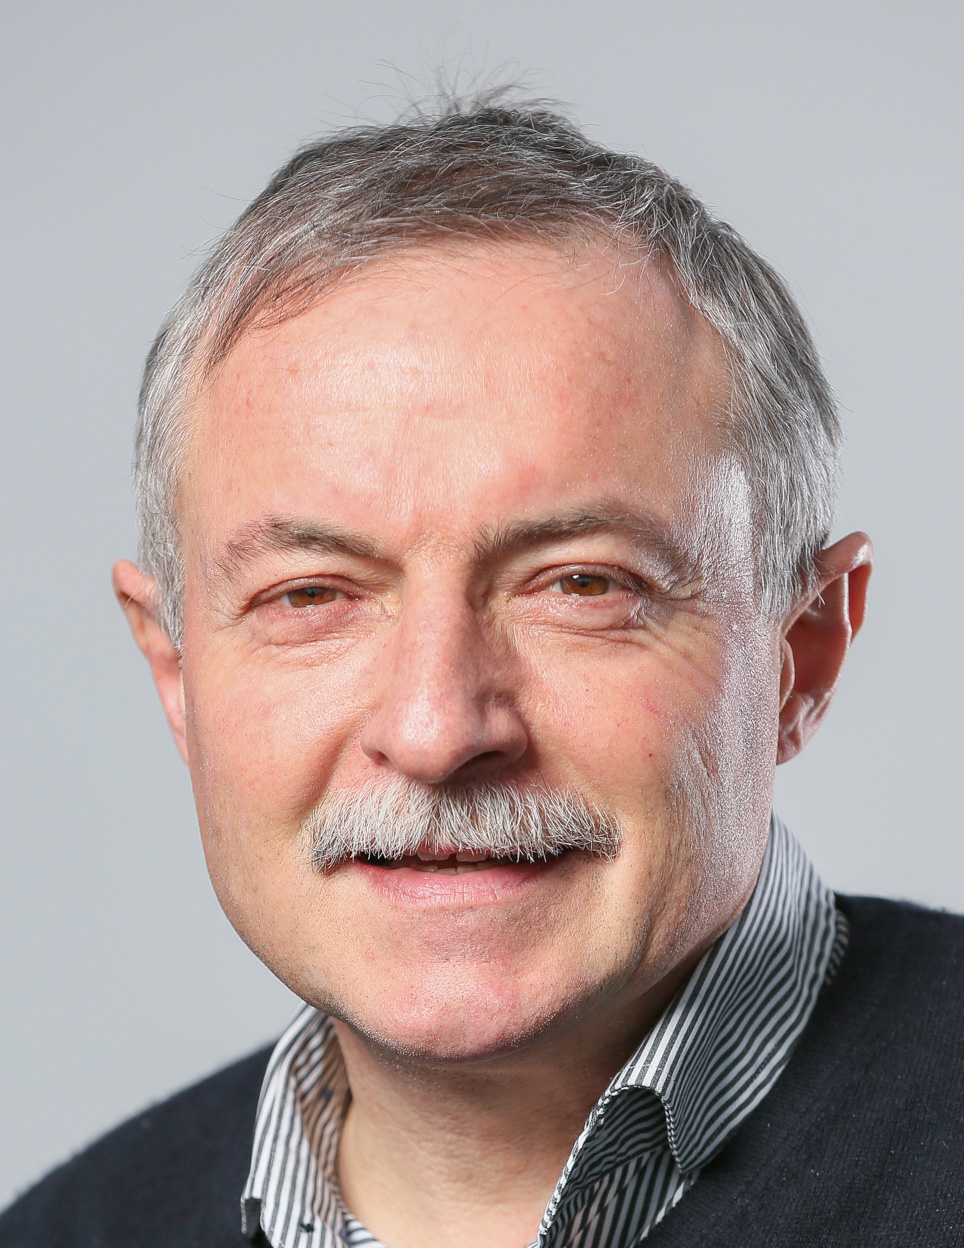 Professor Paul Muralt